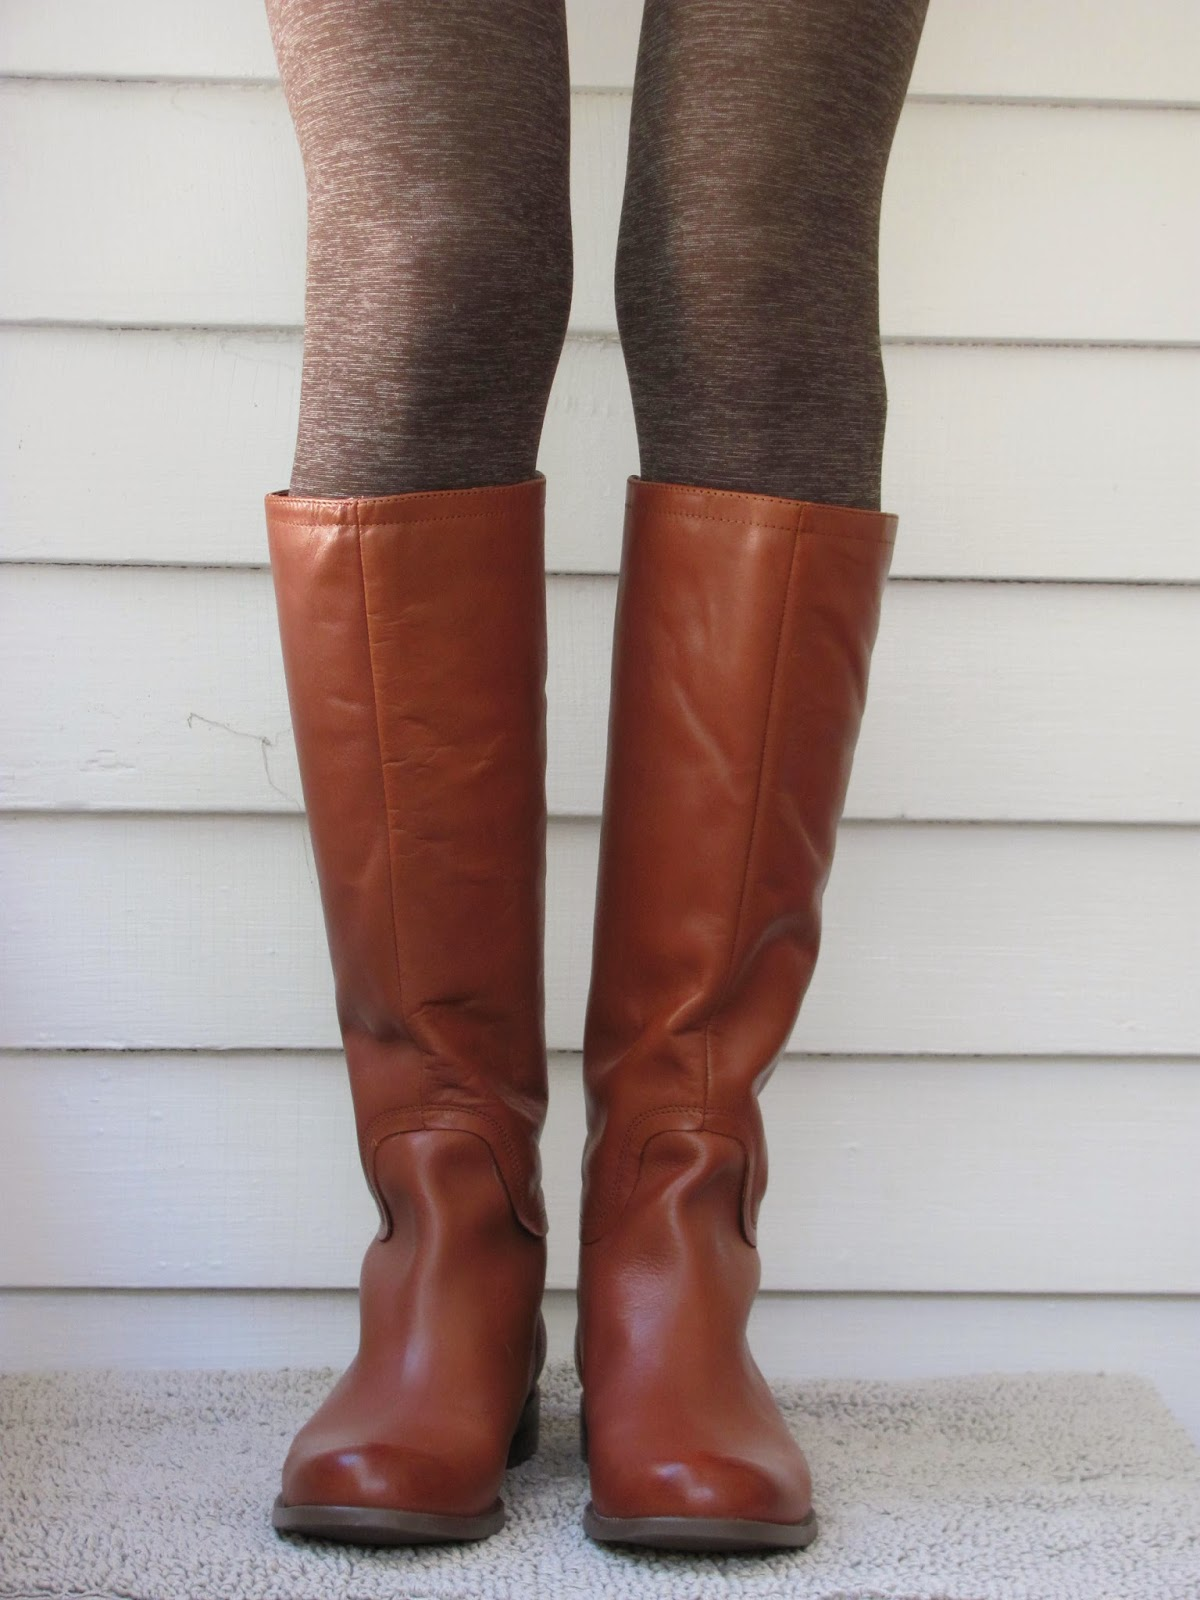 Howdy Slim Riding Boots For Thin Calves September 2014